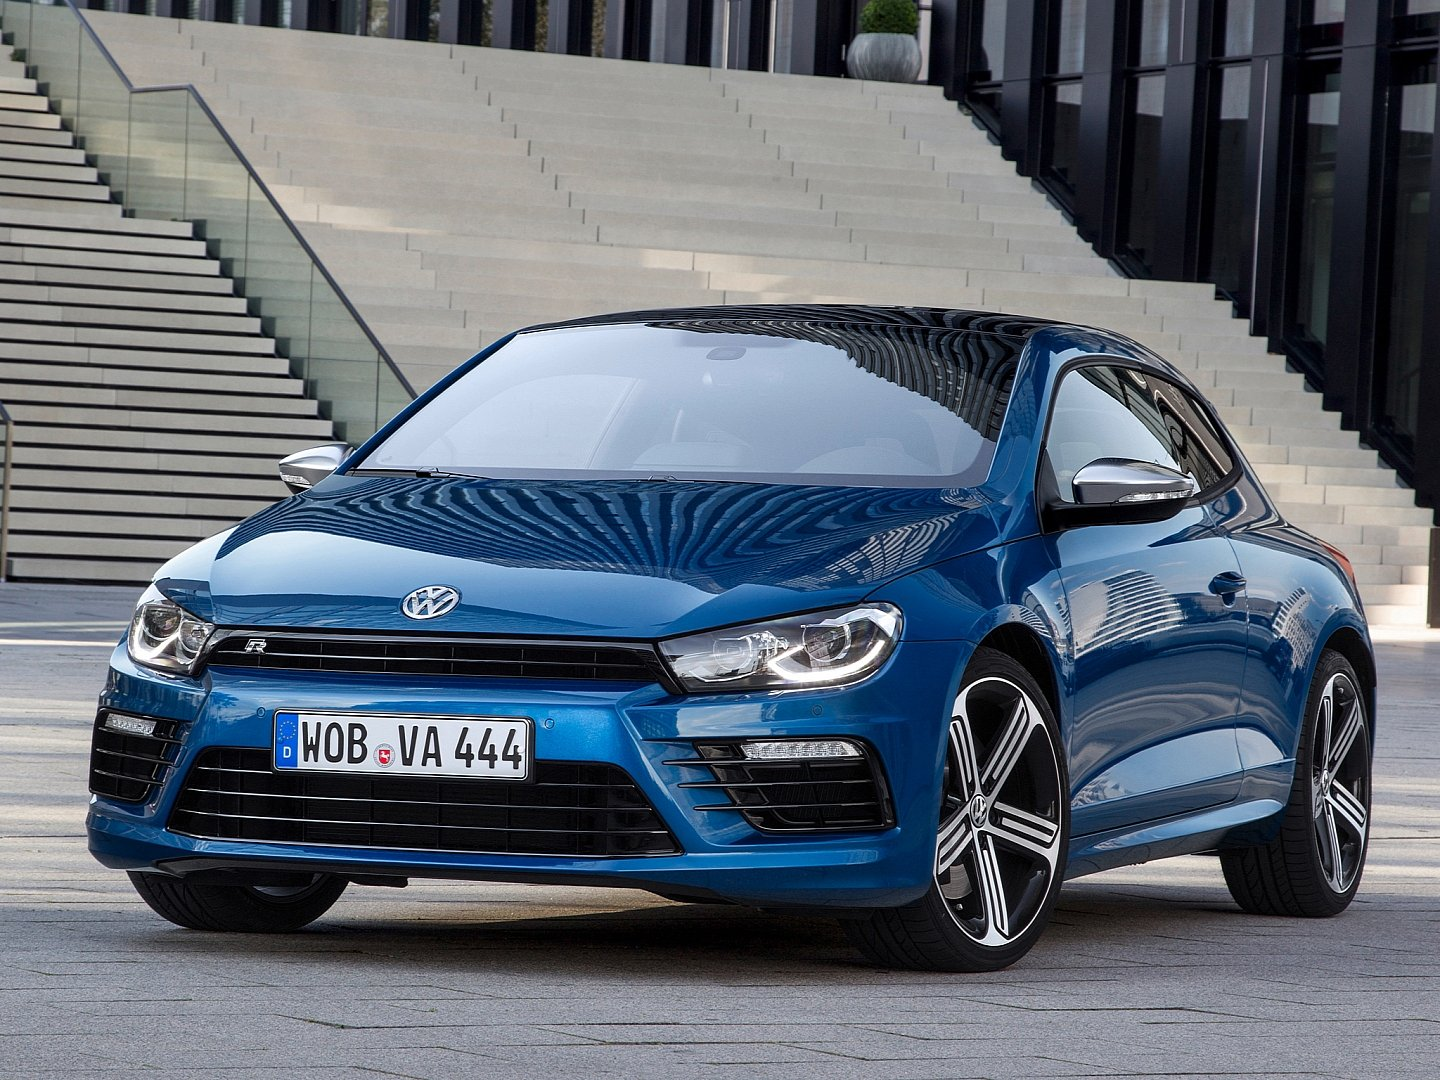 scirocco-radditional-20-ps-accelerates-06-seconds-faster-to-100-km-h-than-its-predecessor-1080p-9